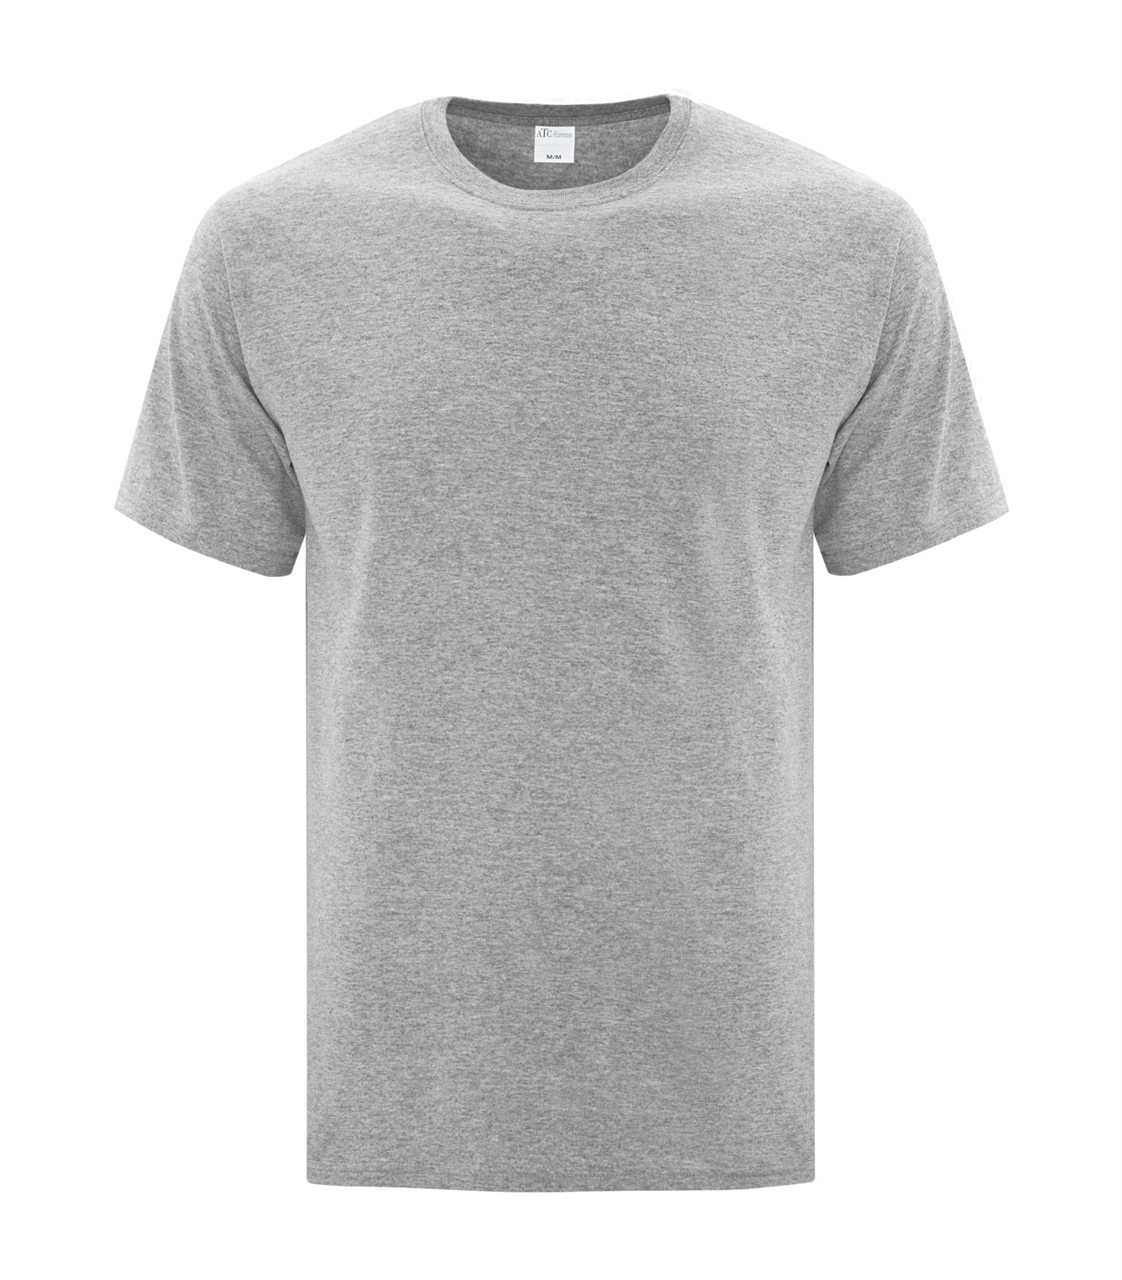 Picture of ATC Everyday Cotton Tee